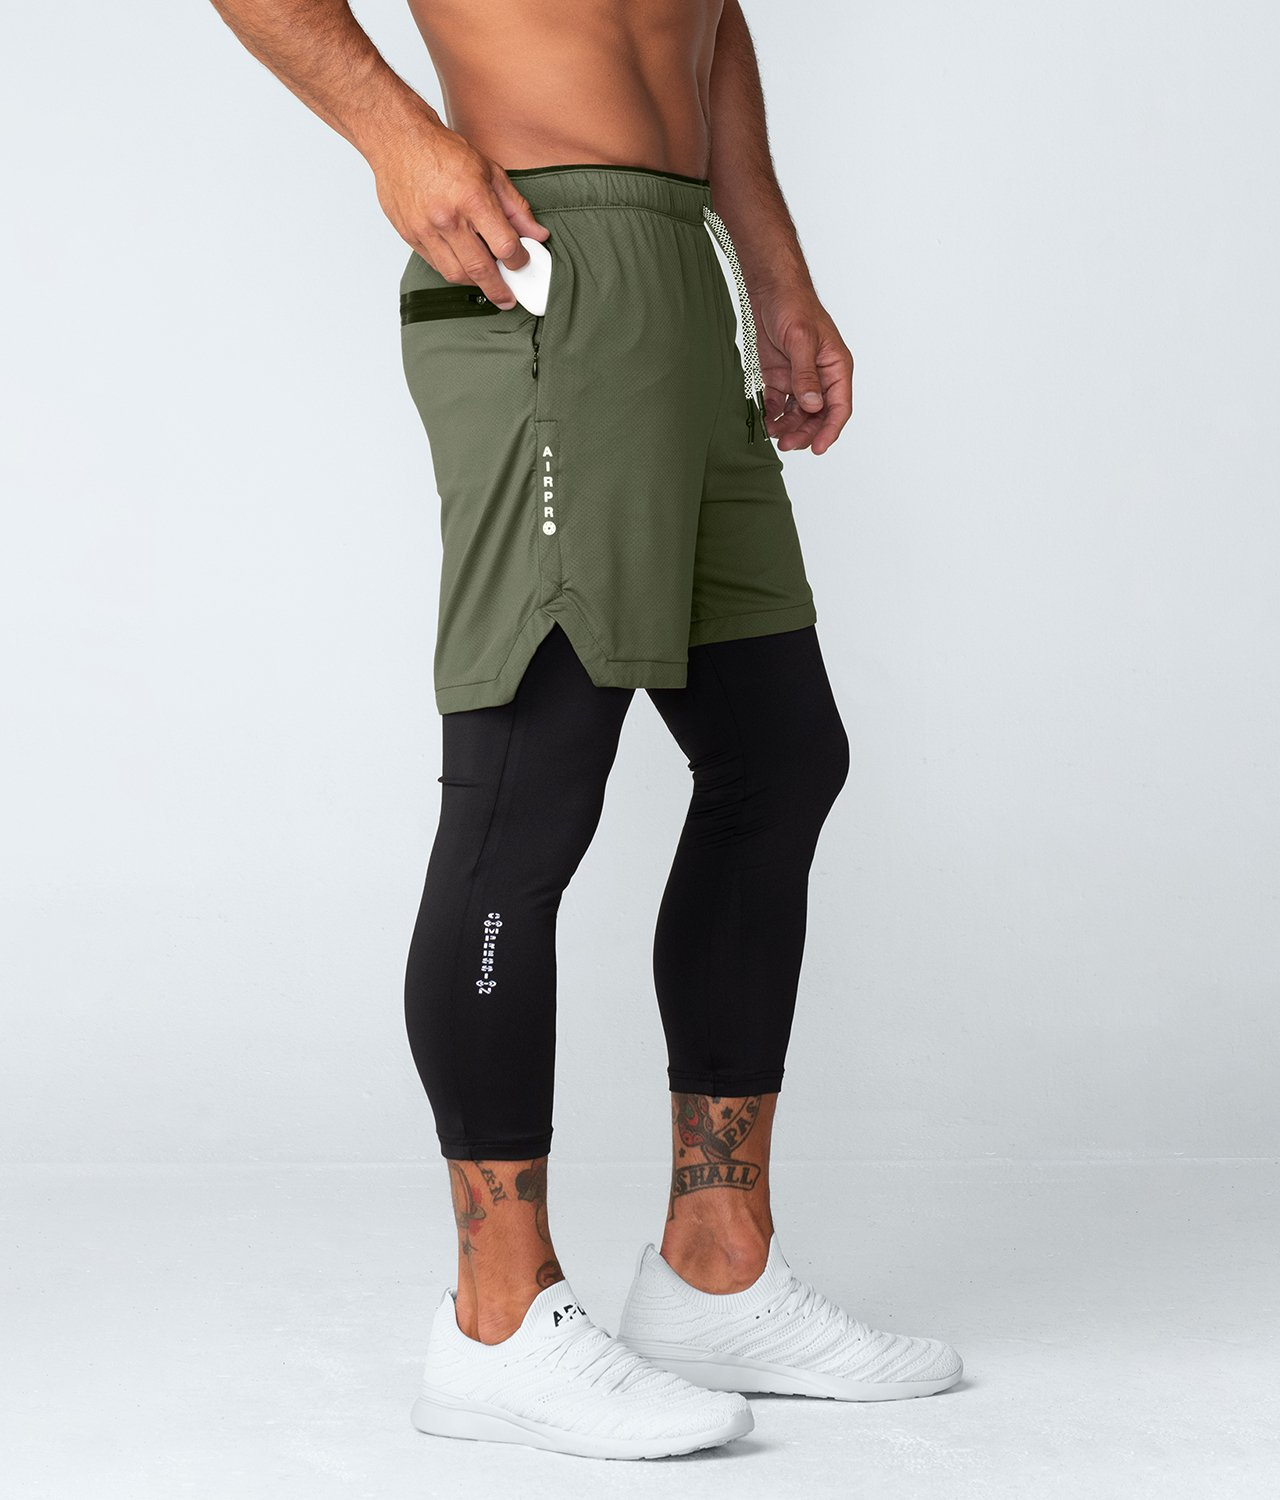 Born Tough United Kingdom Air Pro™ Men's Ventilated Gym Workout Shorts With Legging Liner Military Green